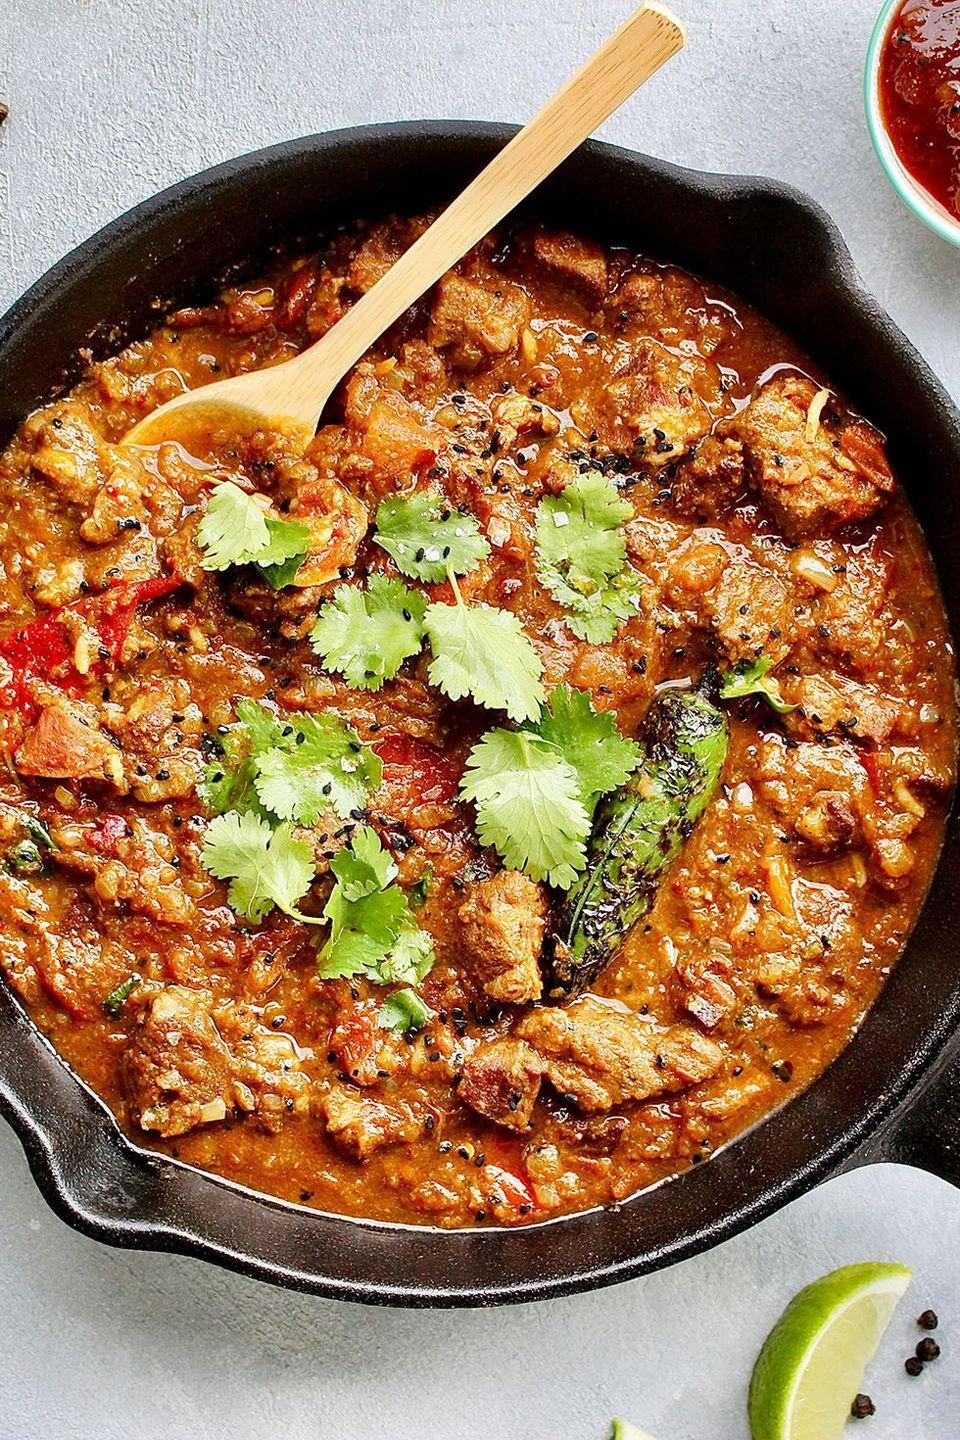 """<p>Why is this our favourite? The combinations of ingredients make a flavour that's hard to resist. It has a good amount of heat, while the sweet tomatoes, combined with the thick, rich, gravy-like sauce, is pretty moreish. </p><p>Get the <a href=""""https://www.delish.com/uk/cooking/recipes/a33642009/lamb-karahi/"""" rel=""""nofollow noopener"""" target=""""_blank"""" data-ylk=""""slk:Lamb Karahi"""" class=""""link rapid-noclick-resp"""">Lamb Karahi</a> recipe.</p>"""